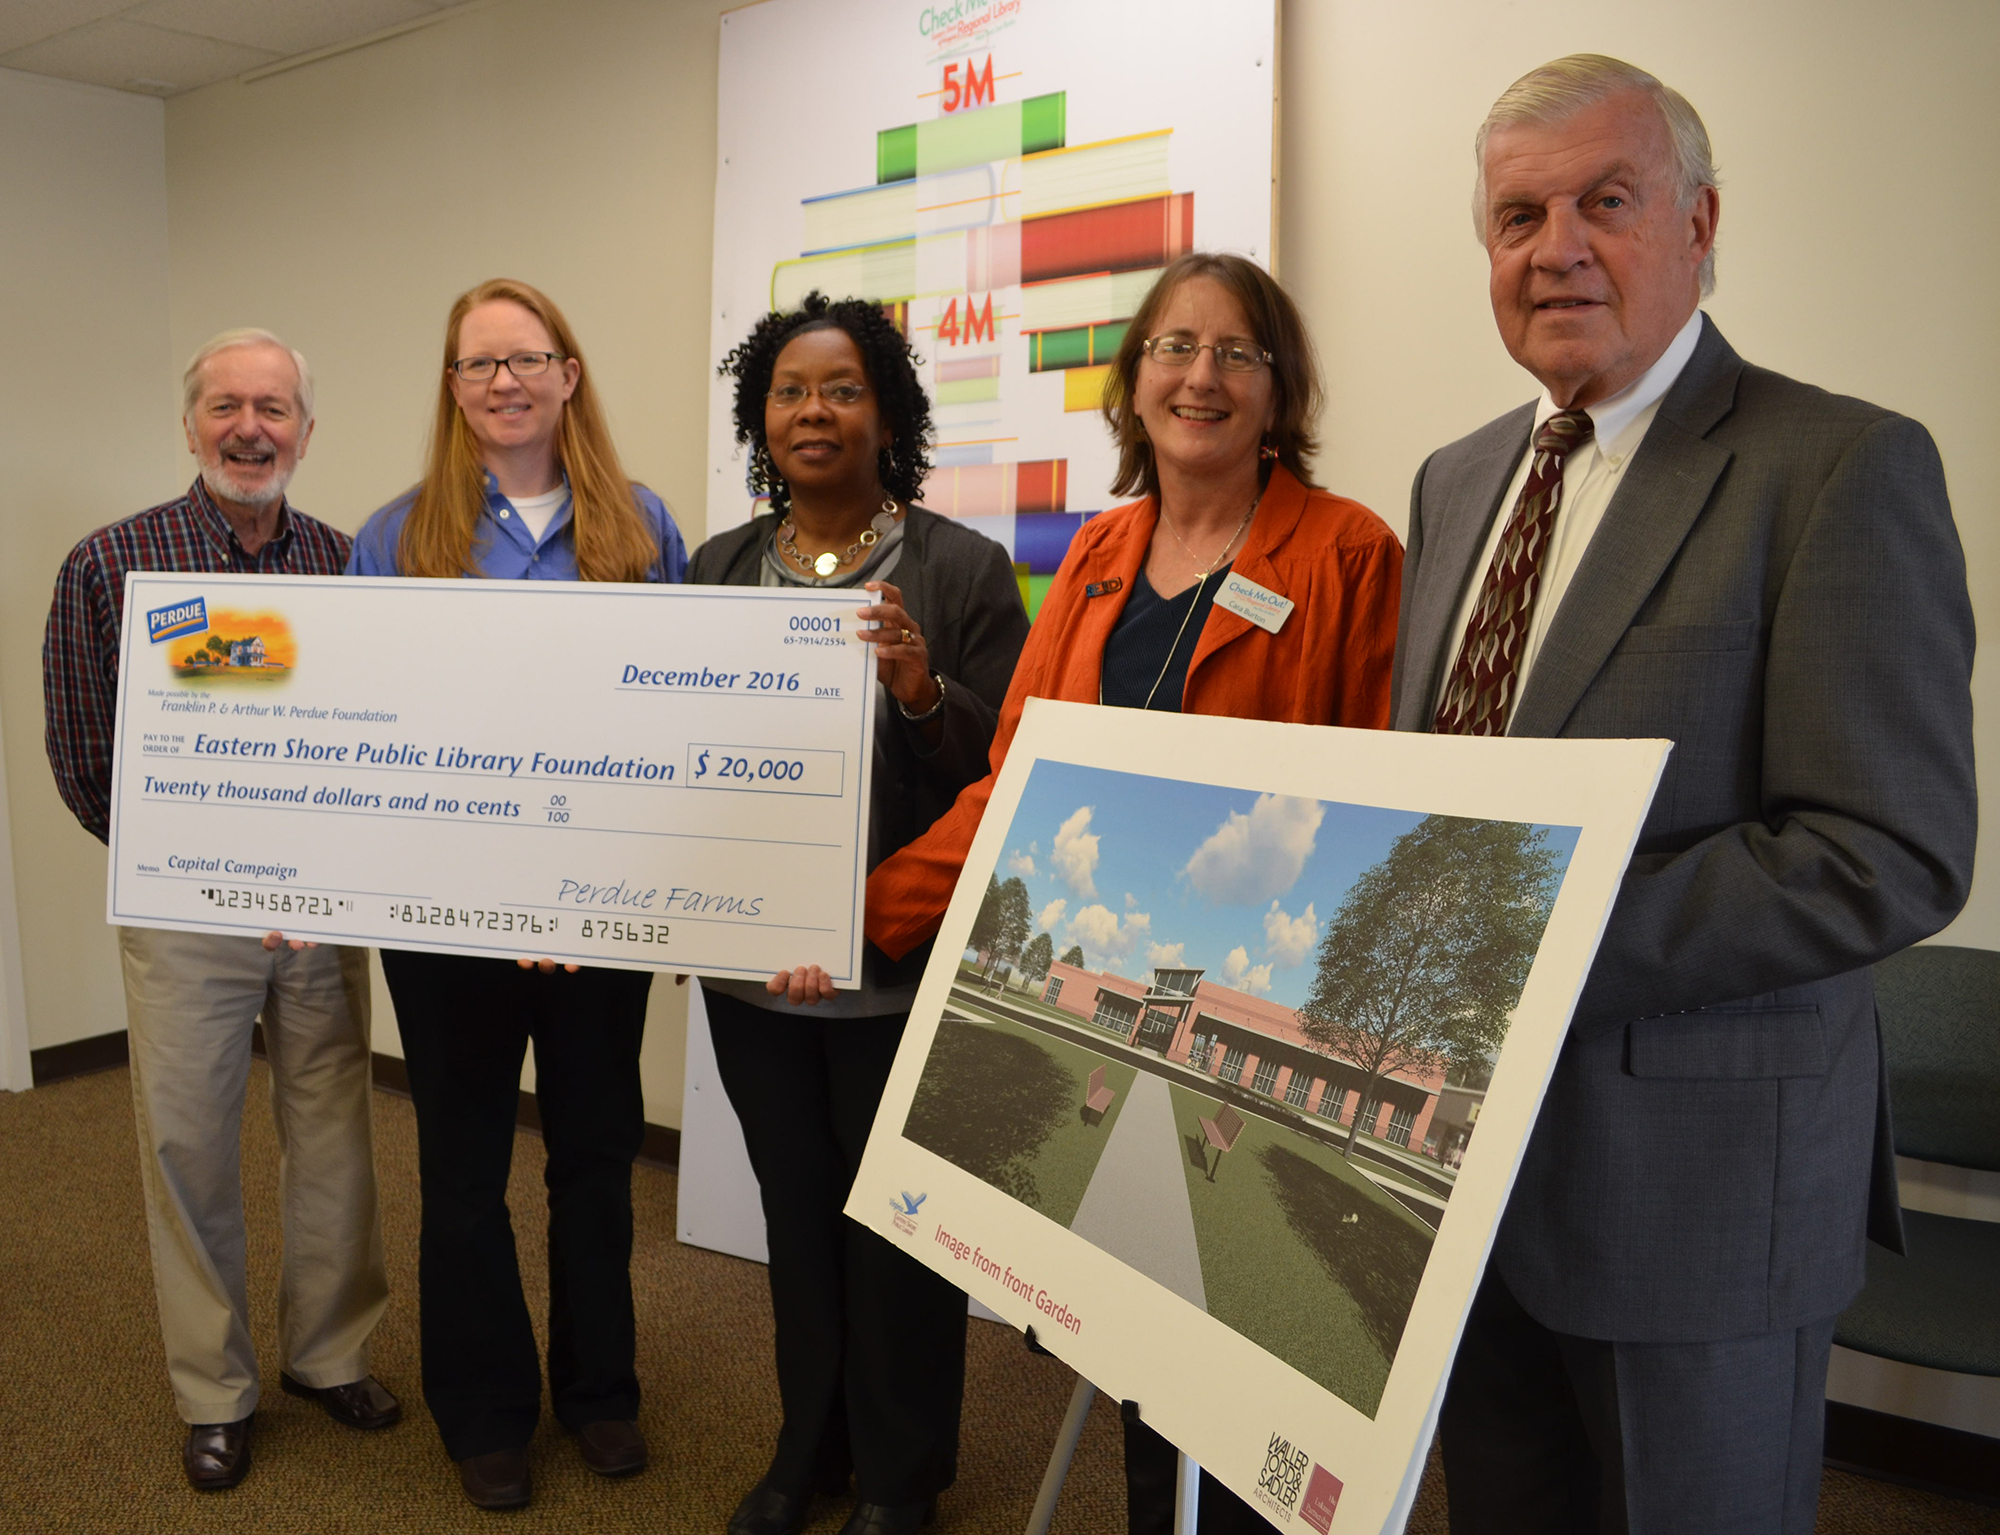 Photo (left to right): Dr. Arthur Fournier, ESPL Foundation Chairman Grants and Corporate Giving Committee; Tamra Langford, Perdue Business Unit Lead; Bel Holden, Perdue Complex Human Resources Manager; Fitz Godwin, ESPL Foundation Capital Campaign Co-Chairman; Cara Burton, Director of Eastern Shore Public Library System